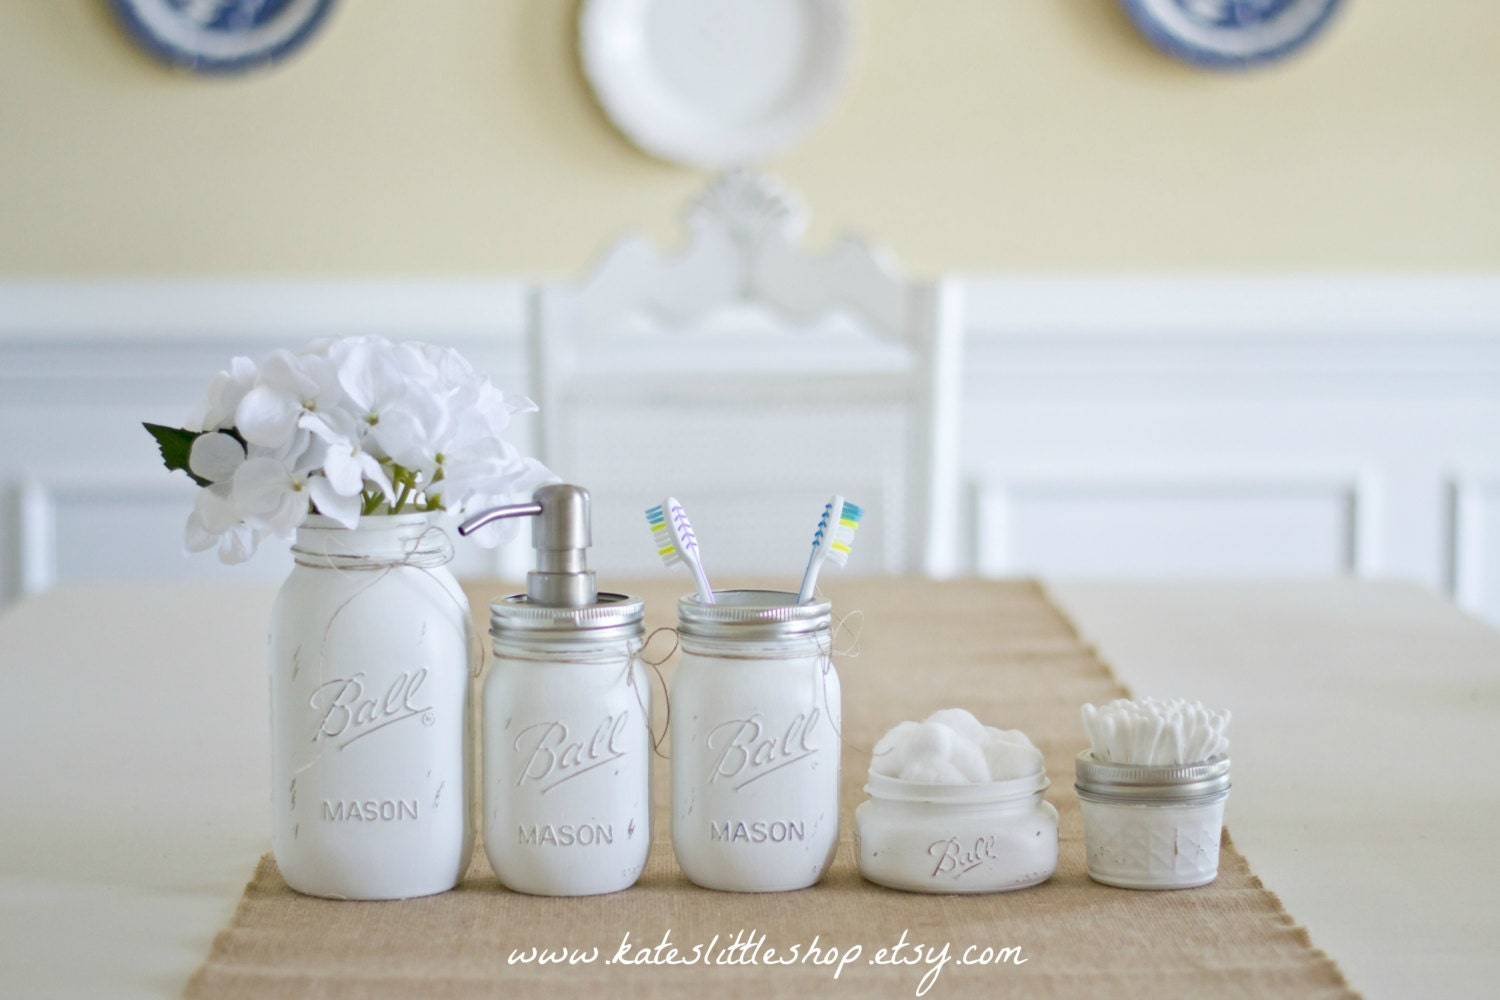 Mason jar bathroom set white ball mason jars rustic home for Bathroom decor mason jars